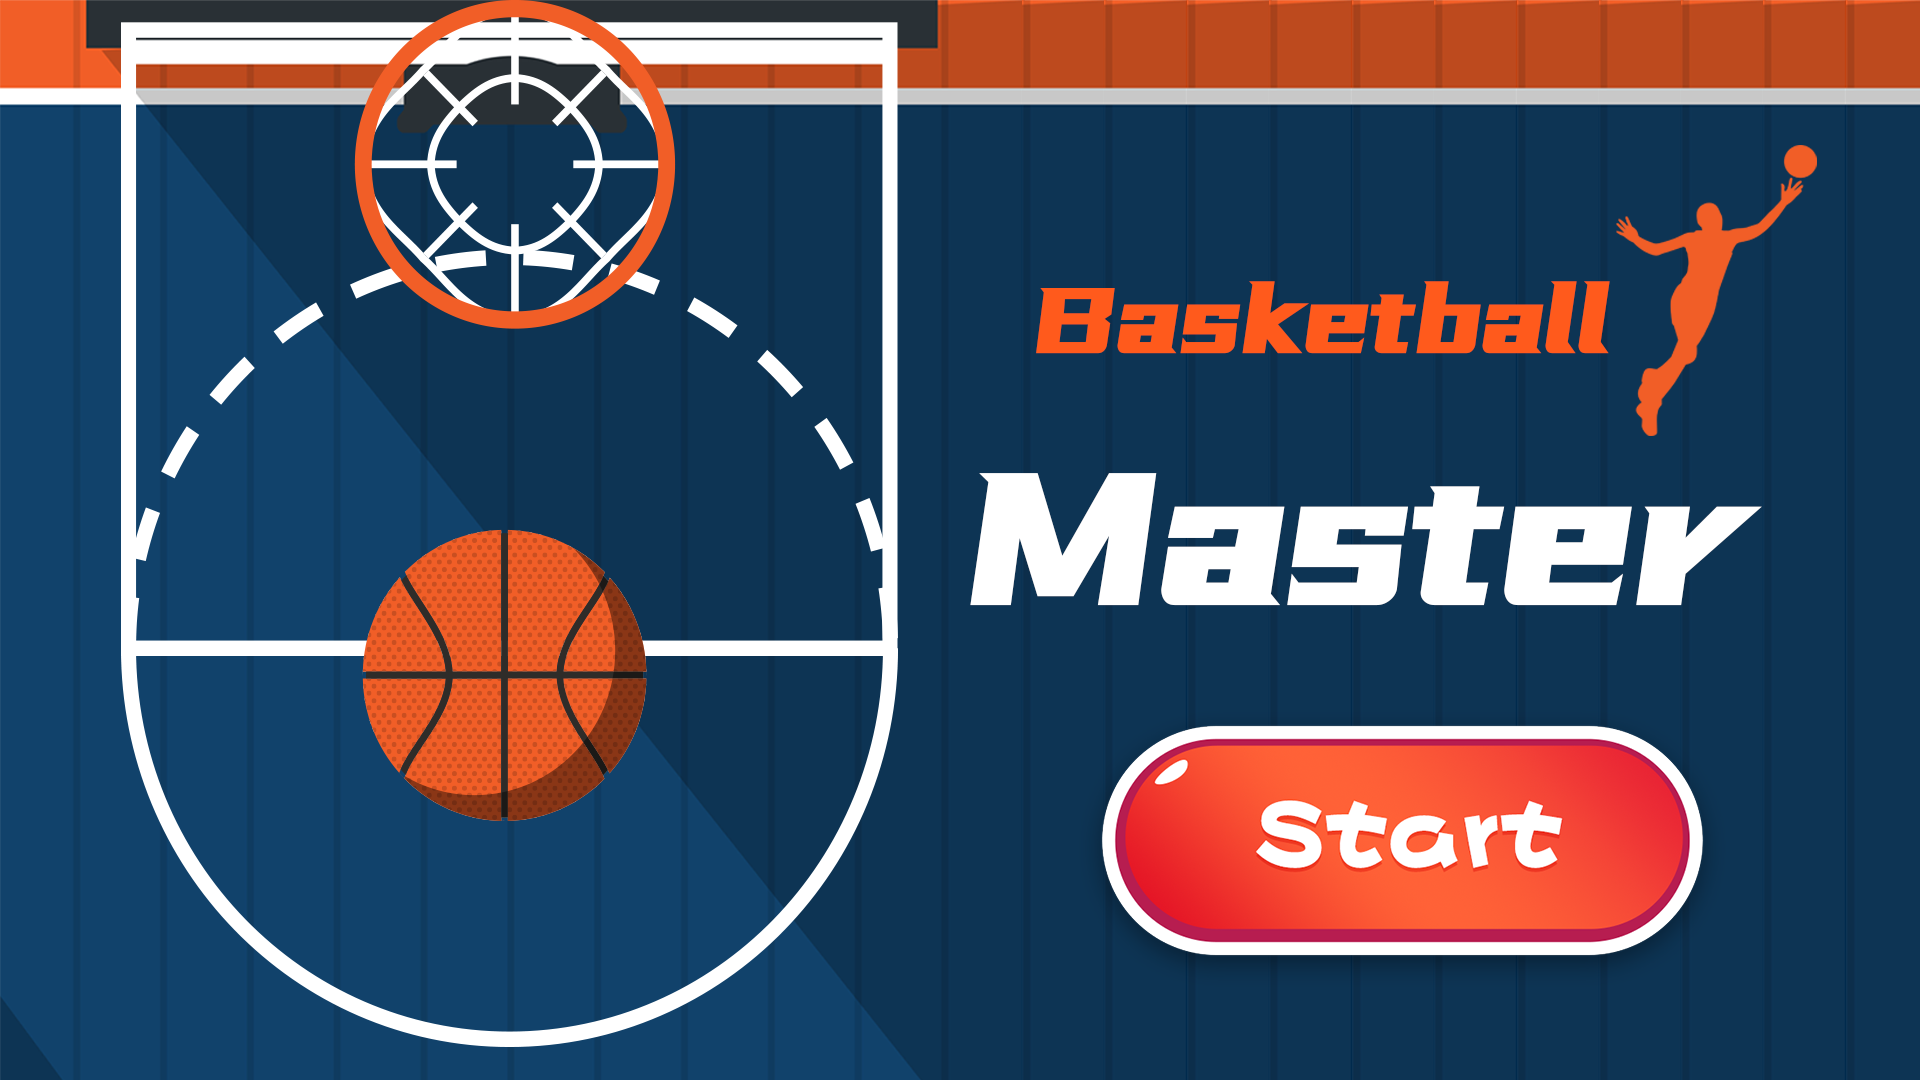 Championship Basketball Competition: The Strongest